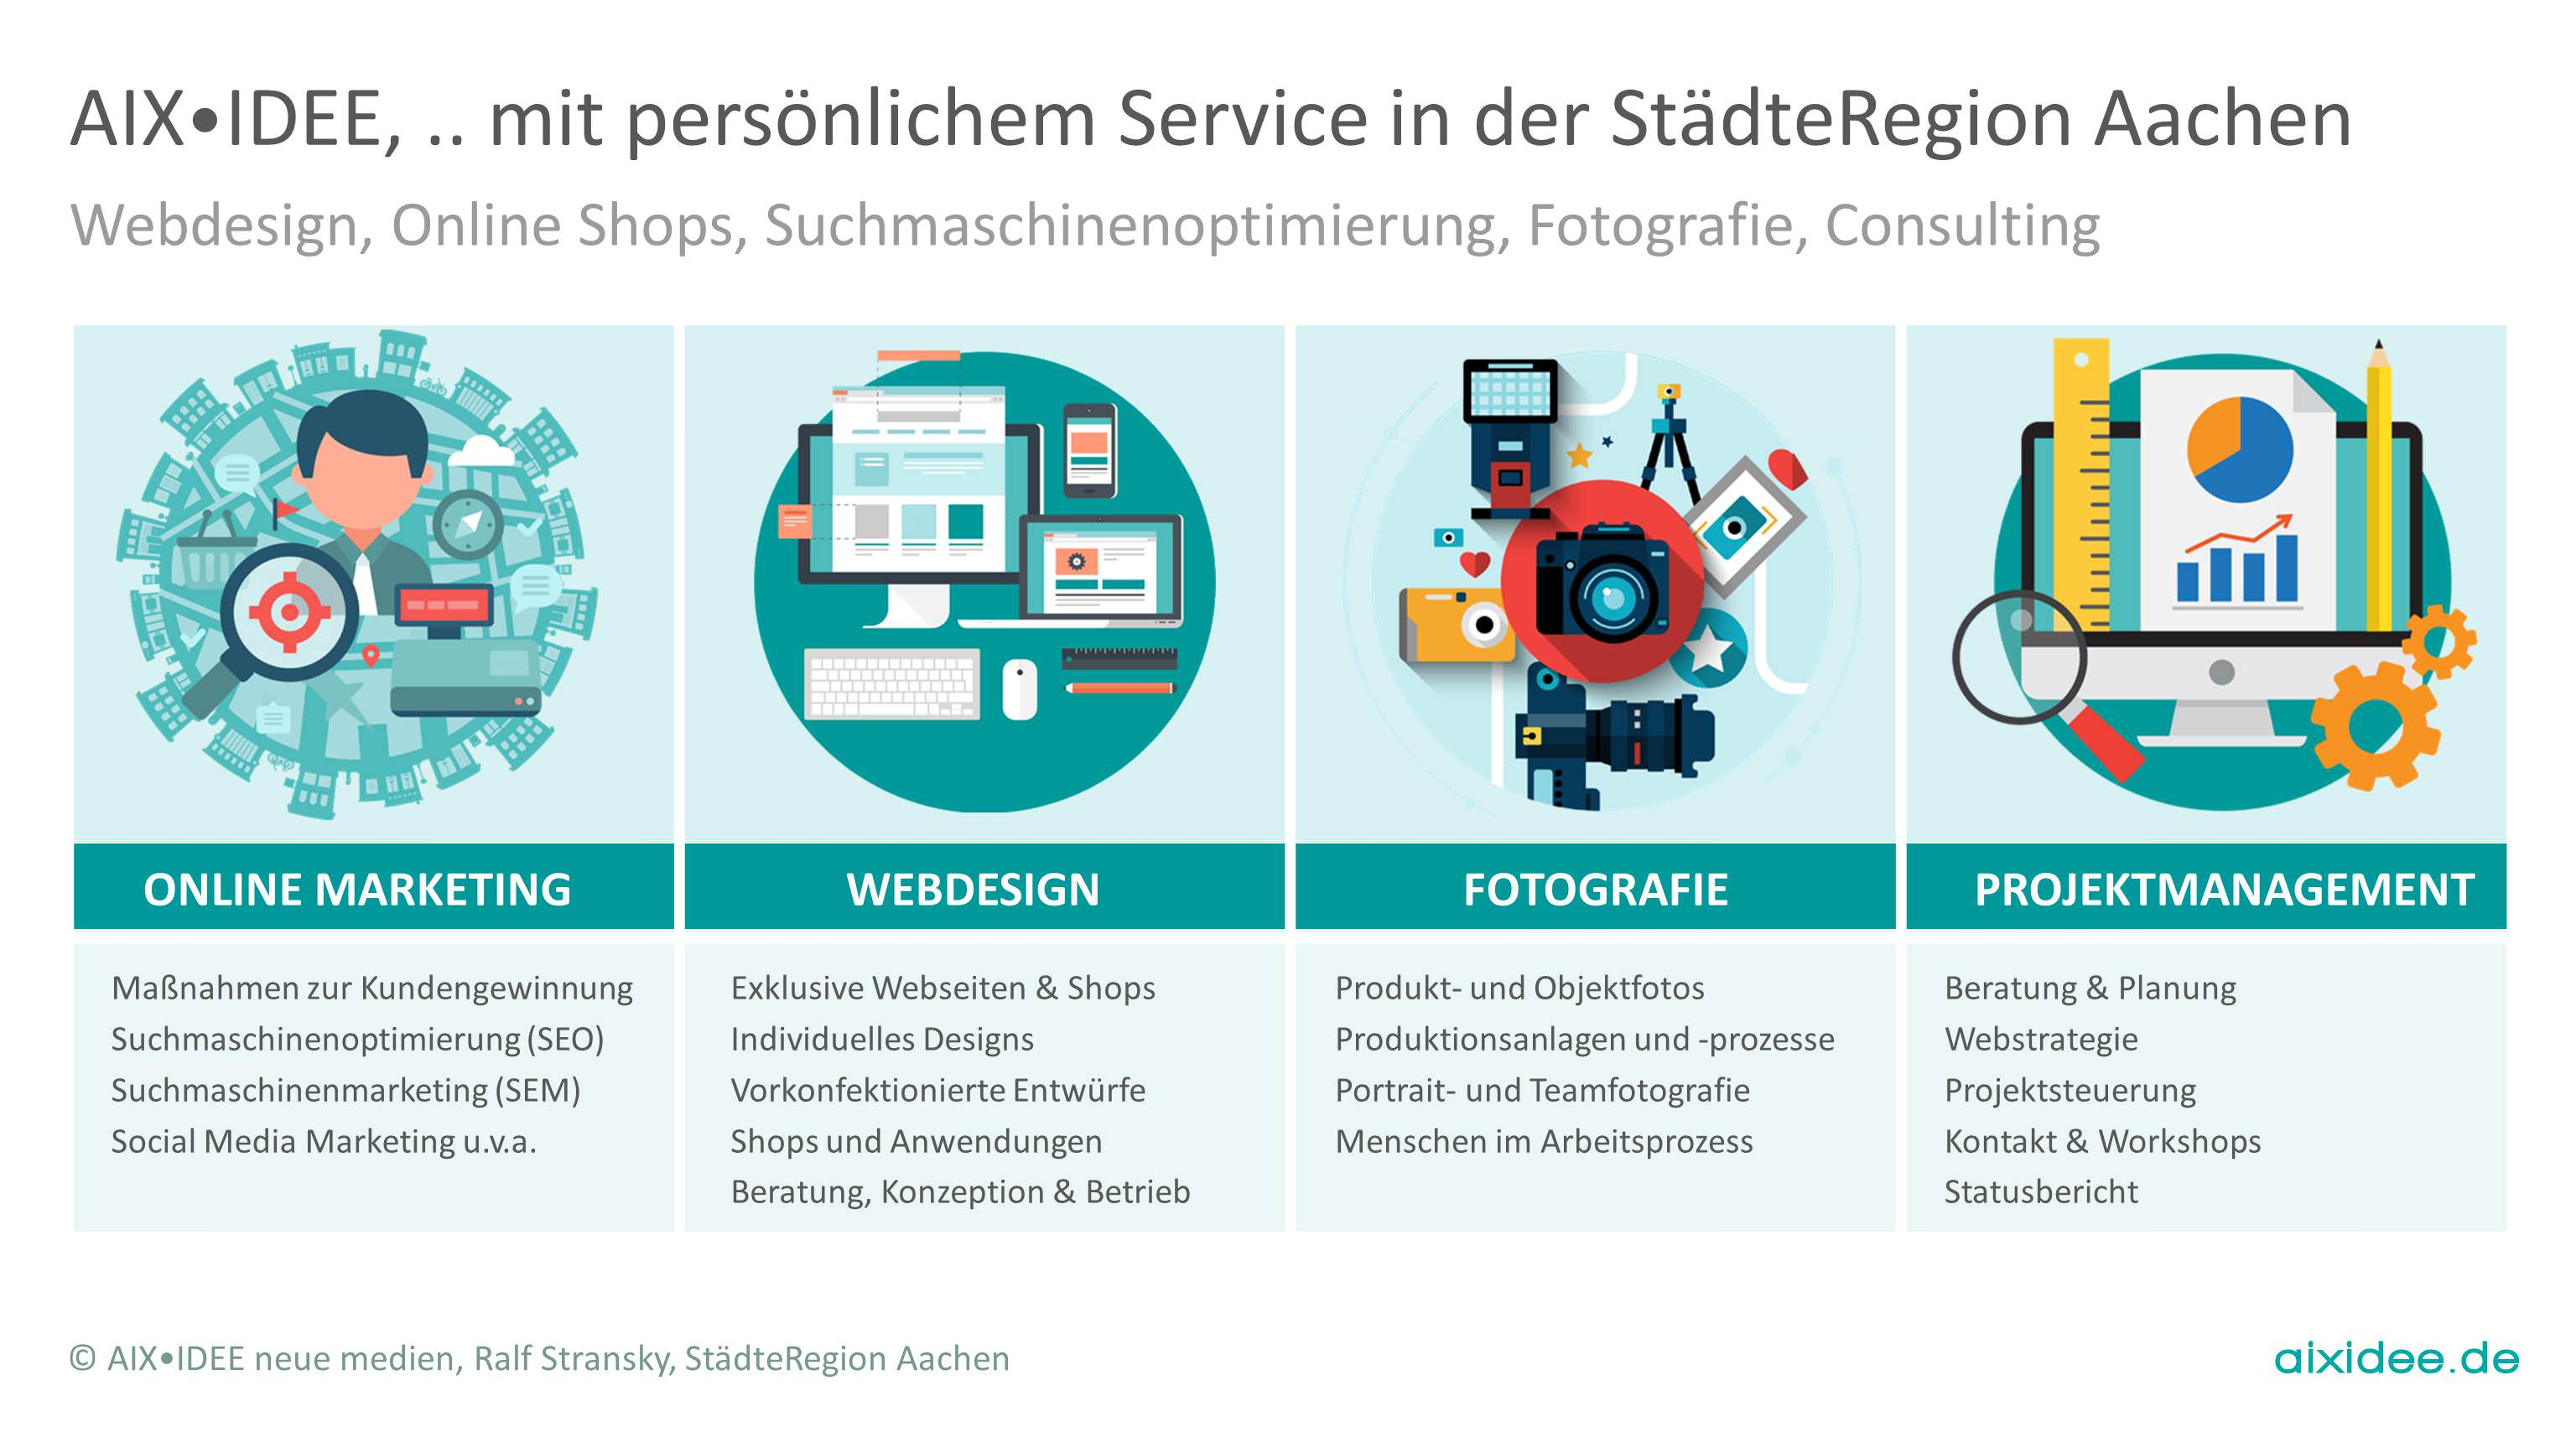 Webdesign, Online Shops, Suchmaschinenoptimierung, Fotografie, Consulting